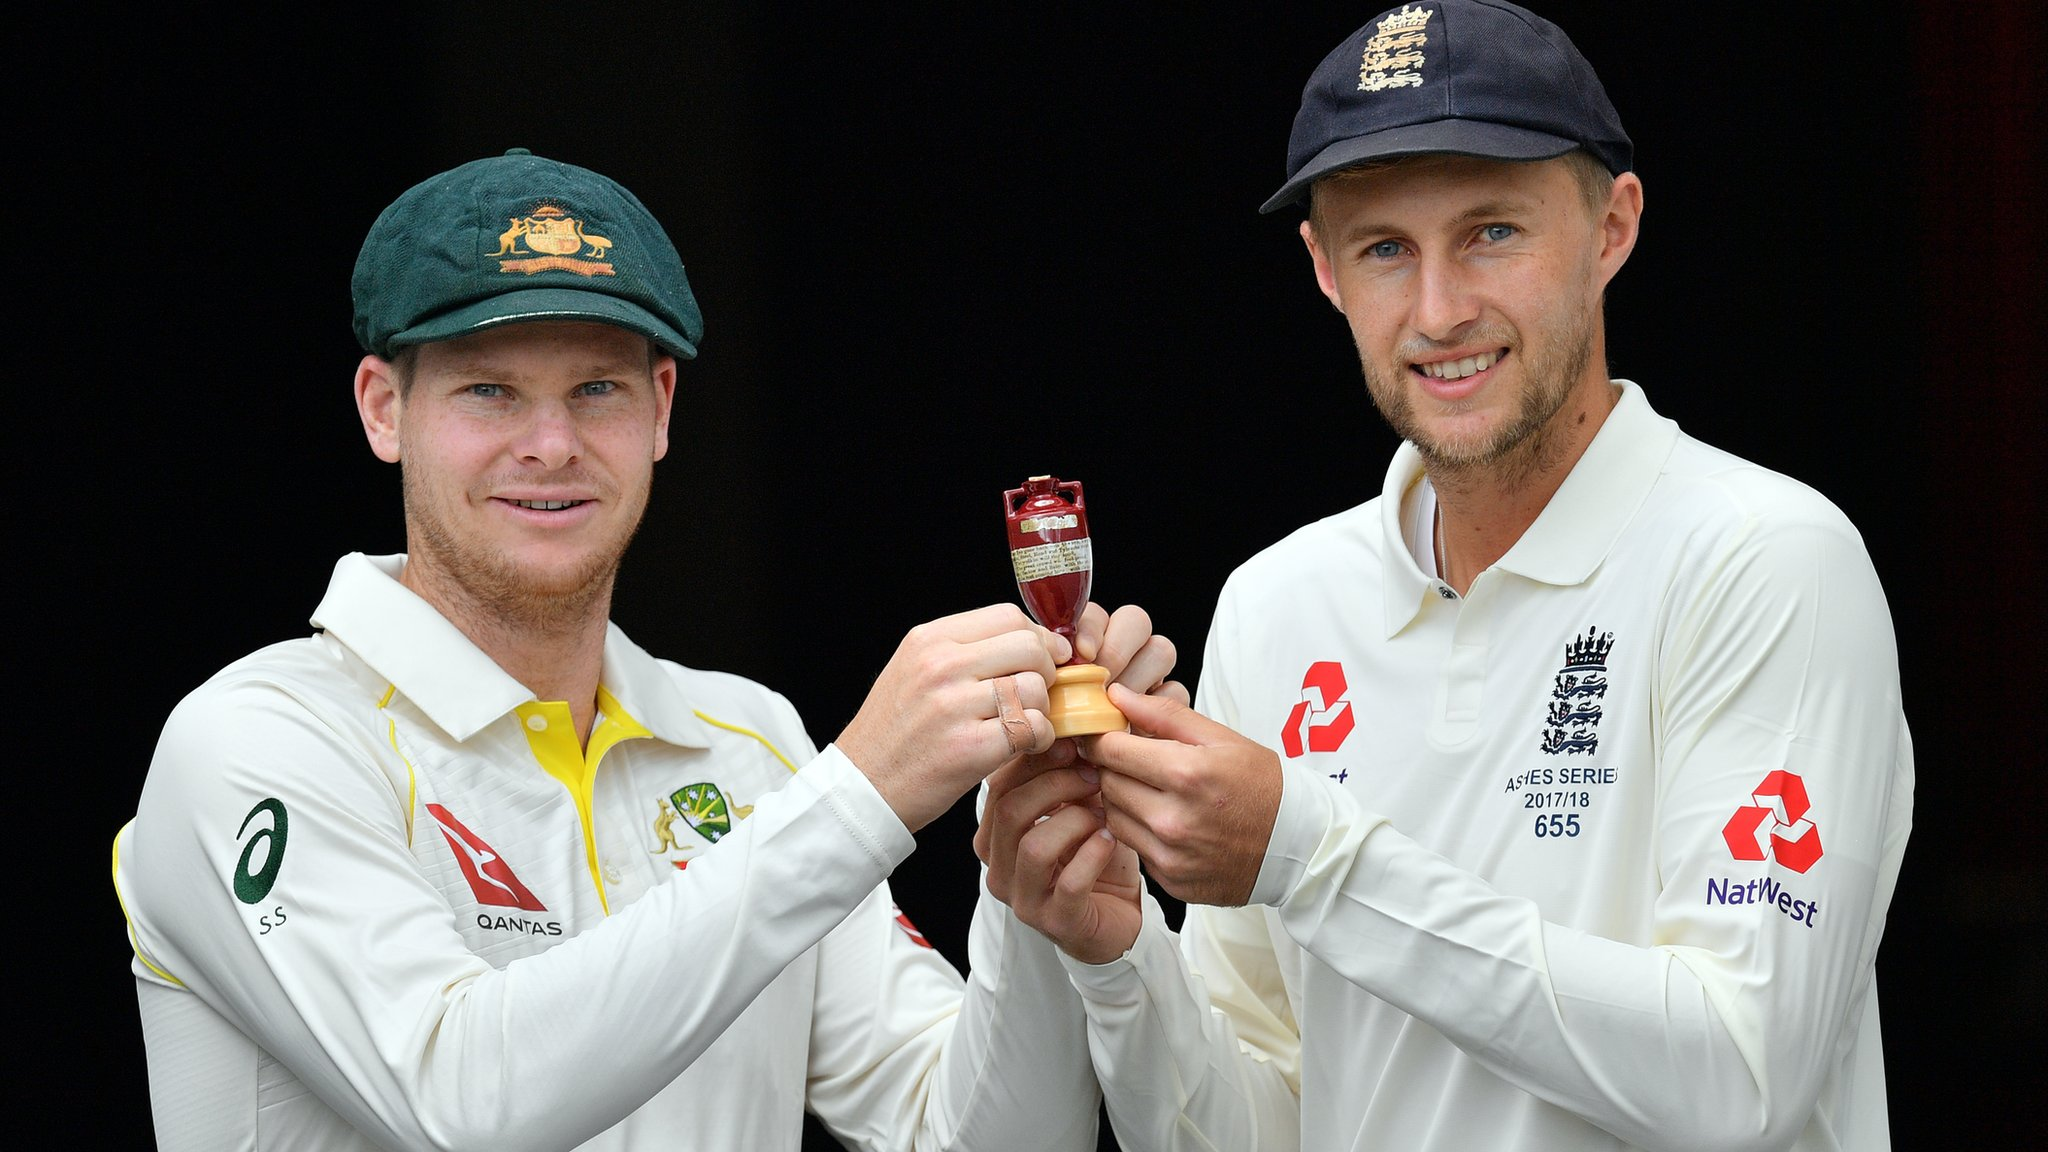 Ashes predictions - does anyone think England will win?